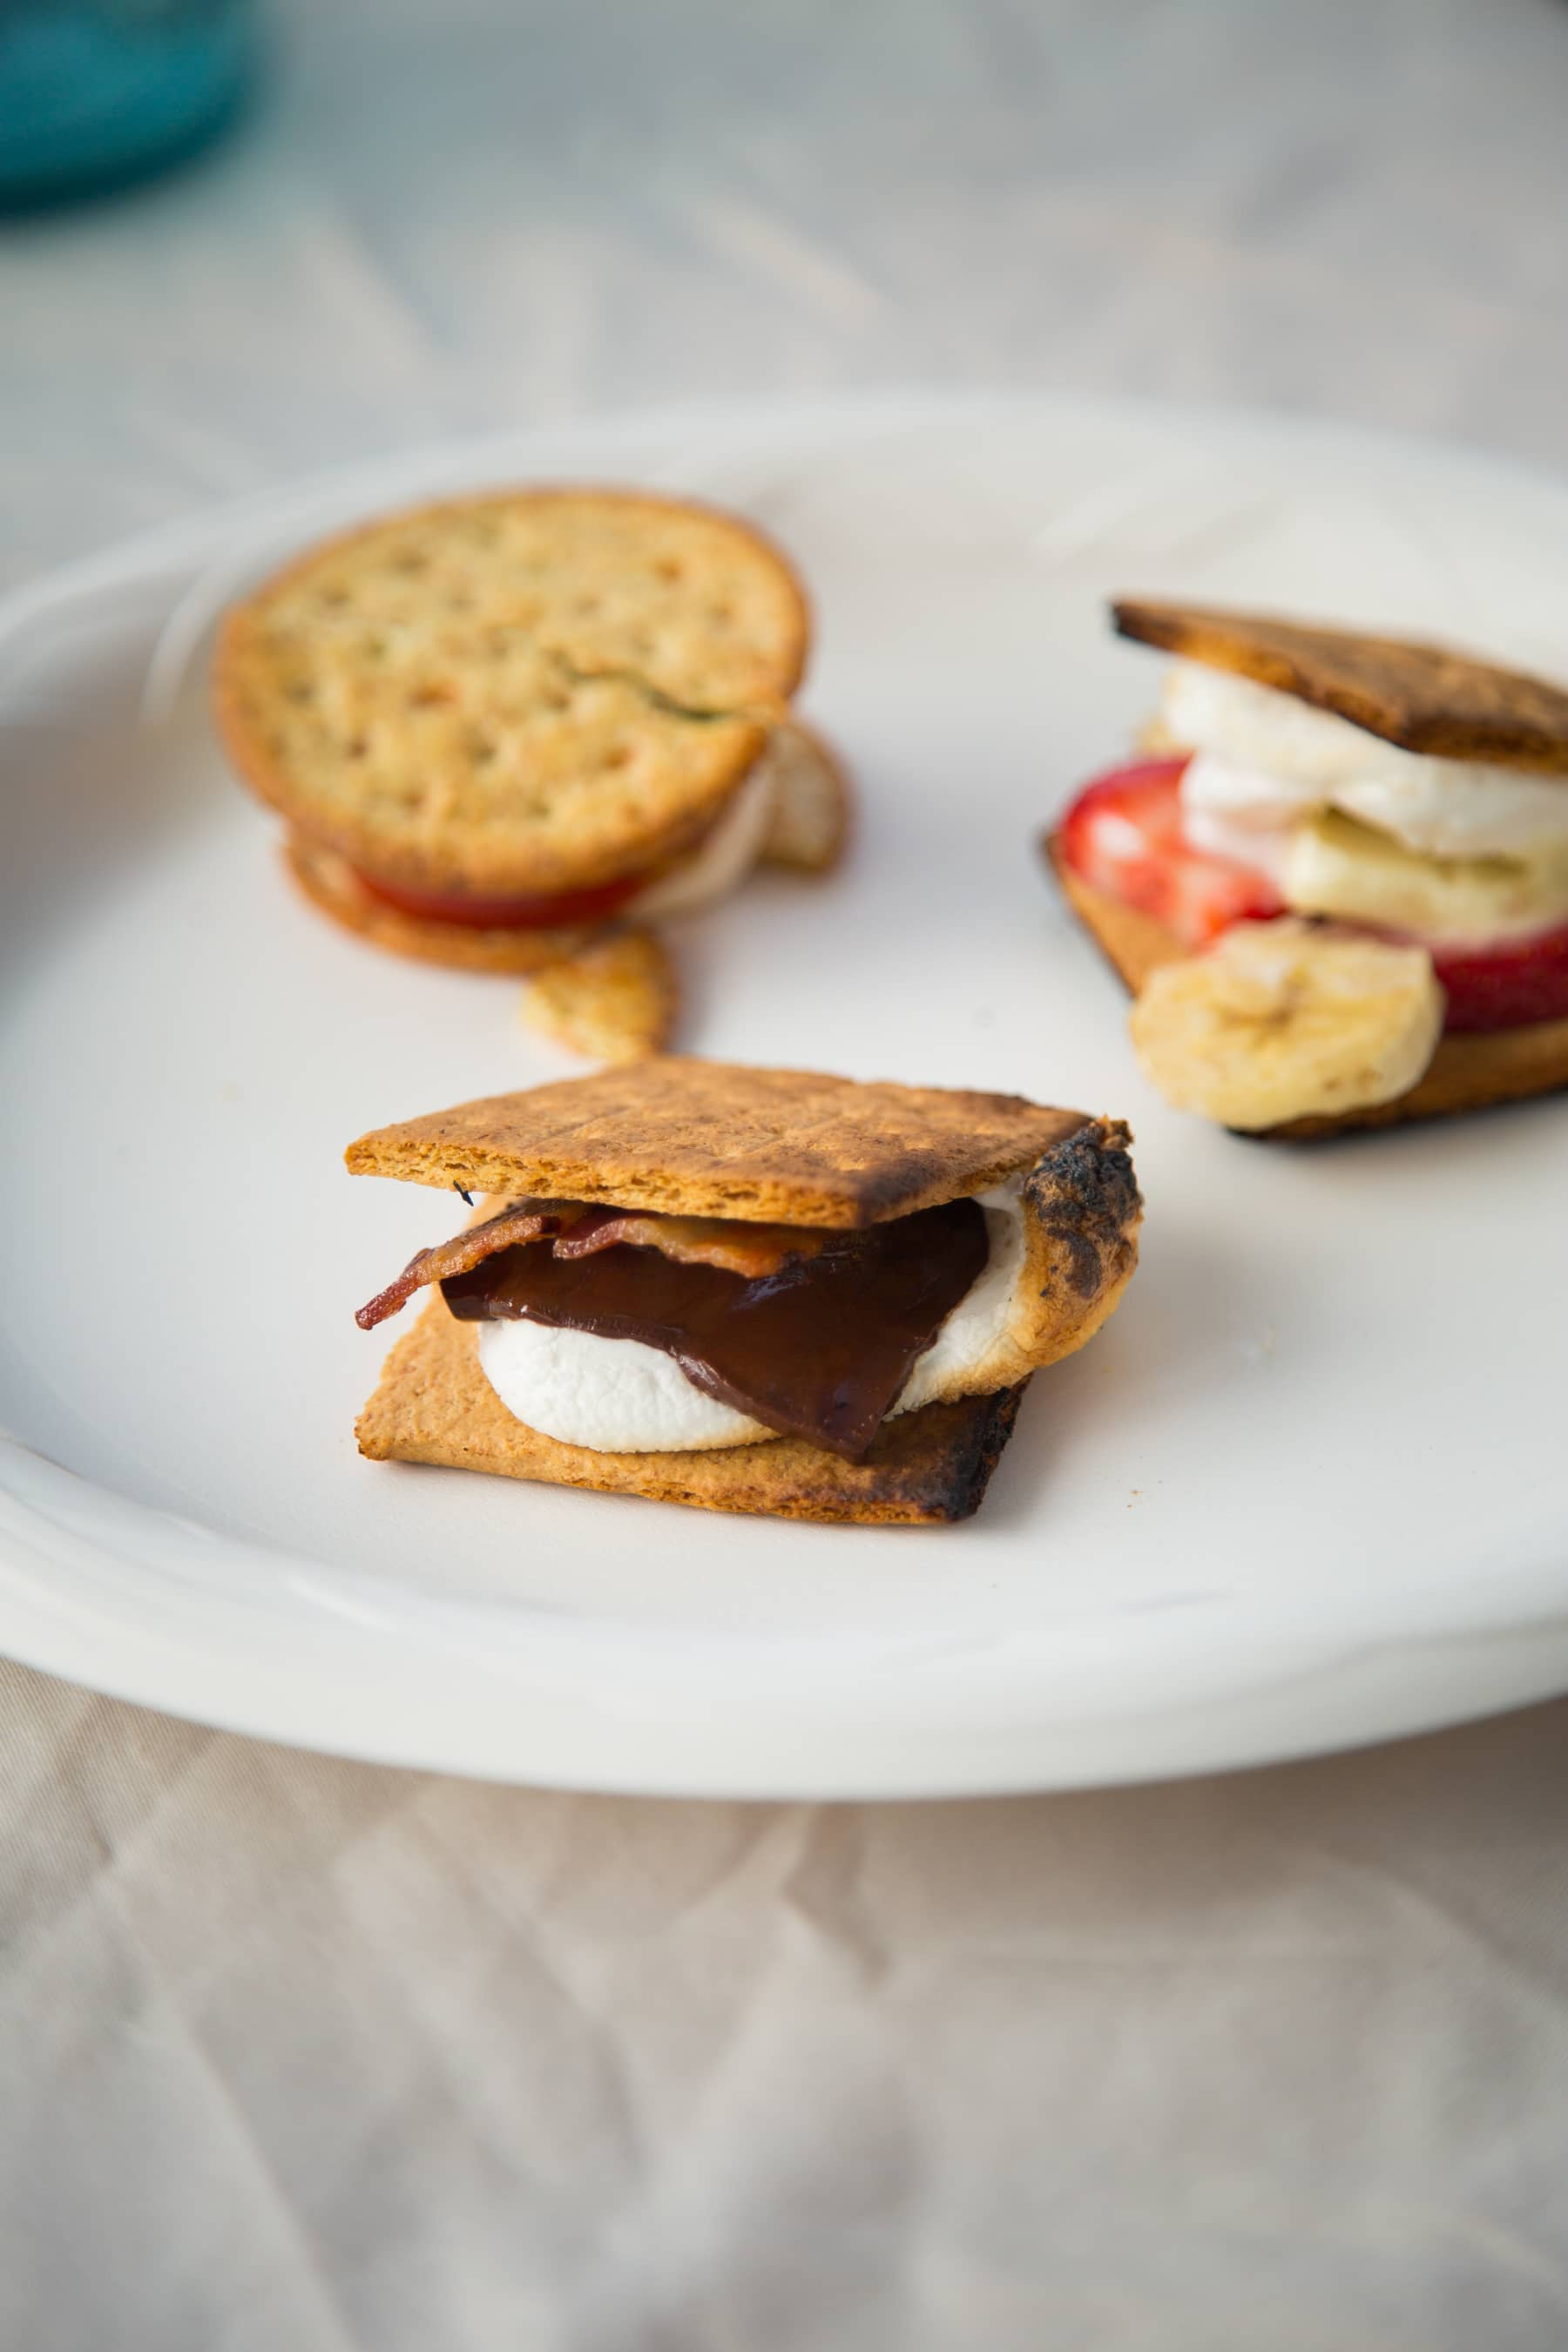 A Backyard S'mores Party: gallery image 22